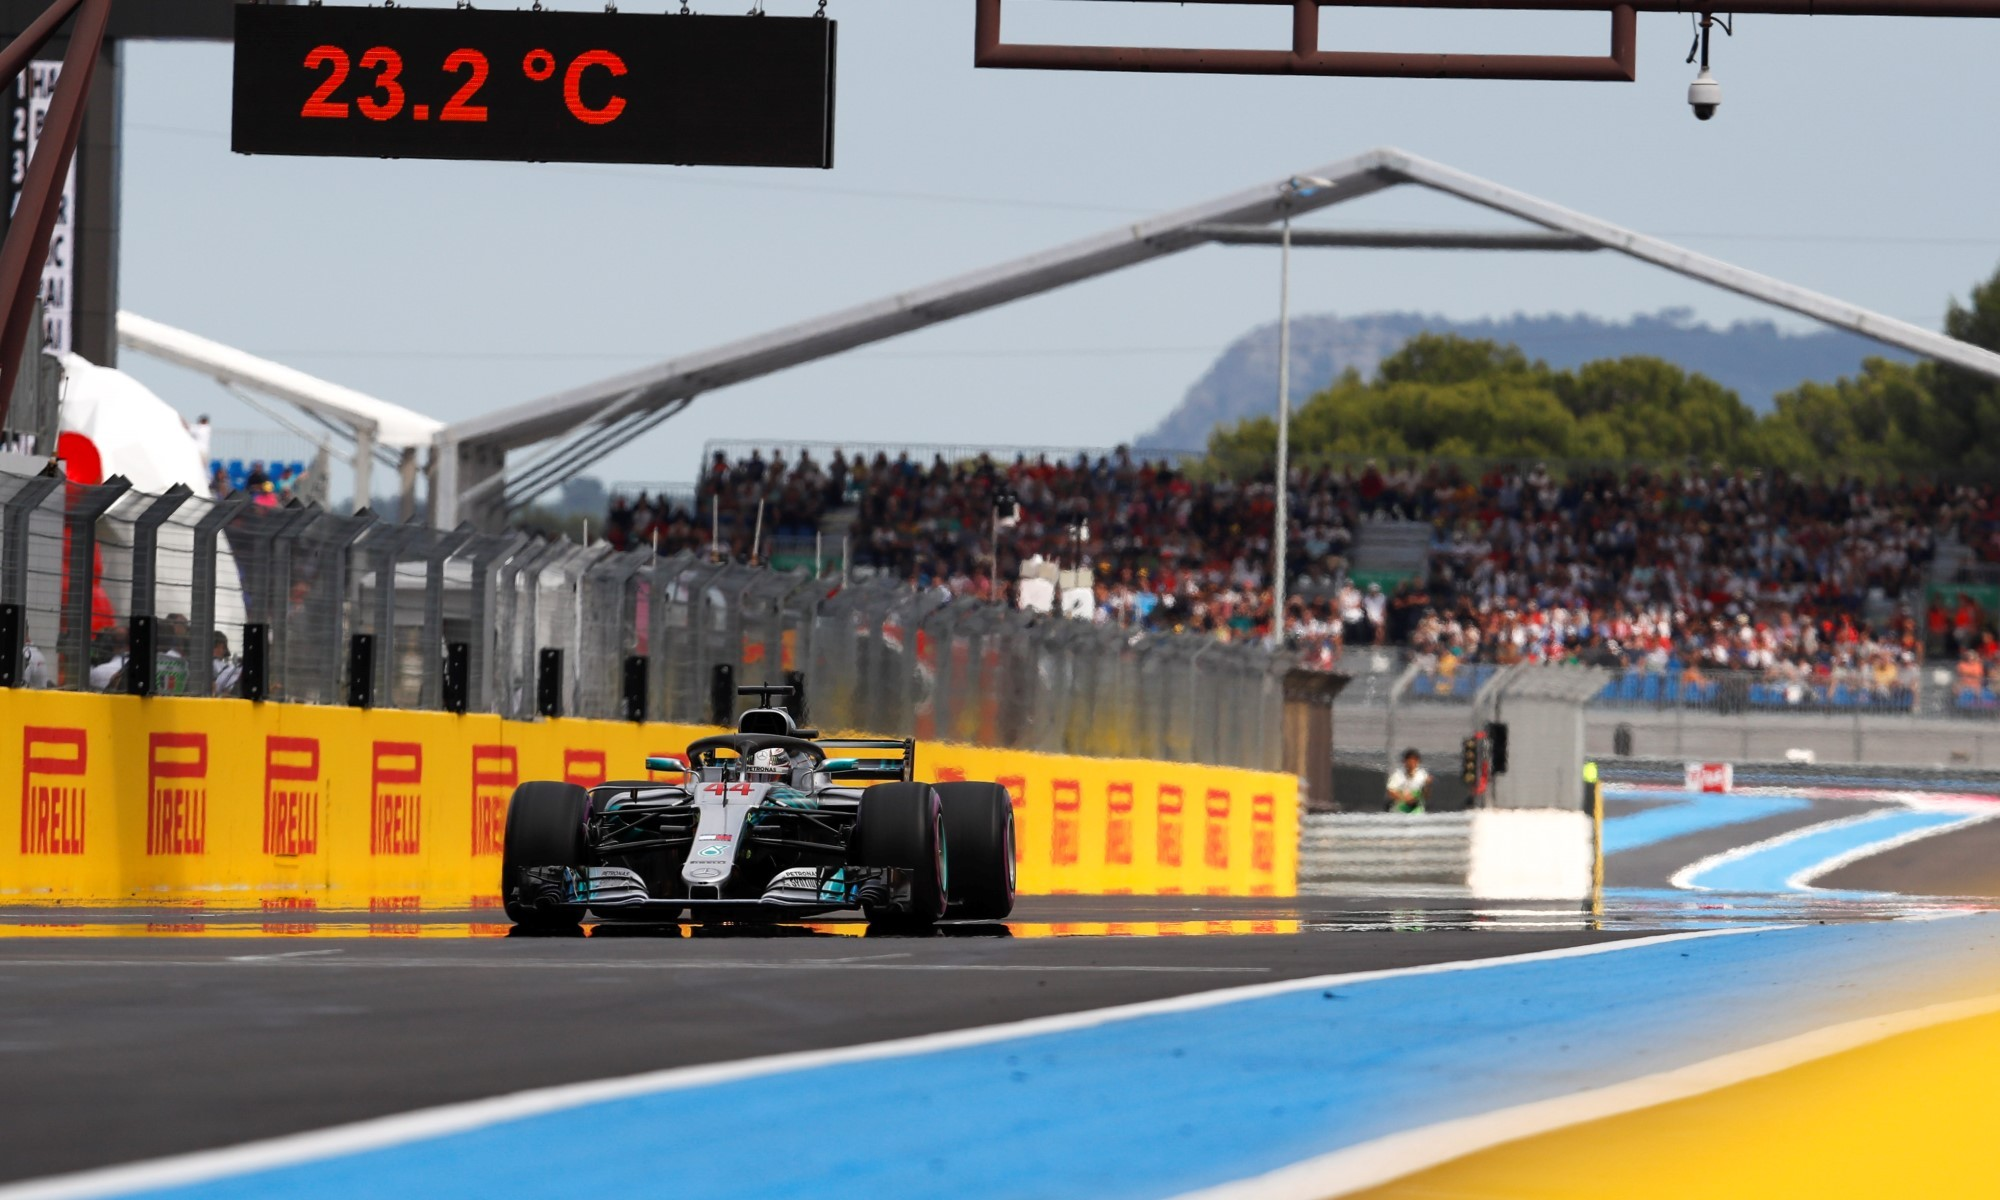 Lewis Hamilton won the 2018 French F1 GP